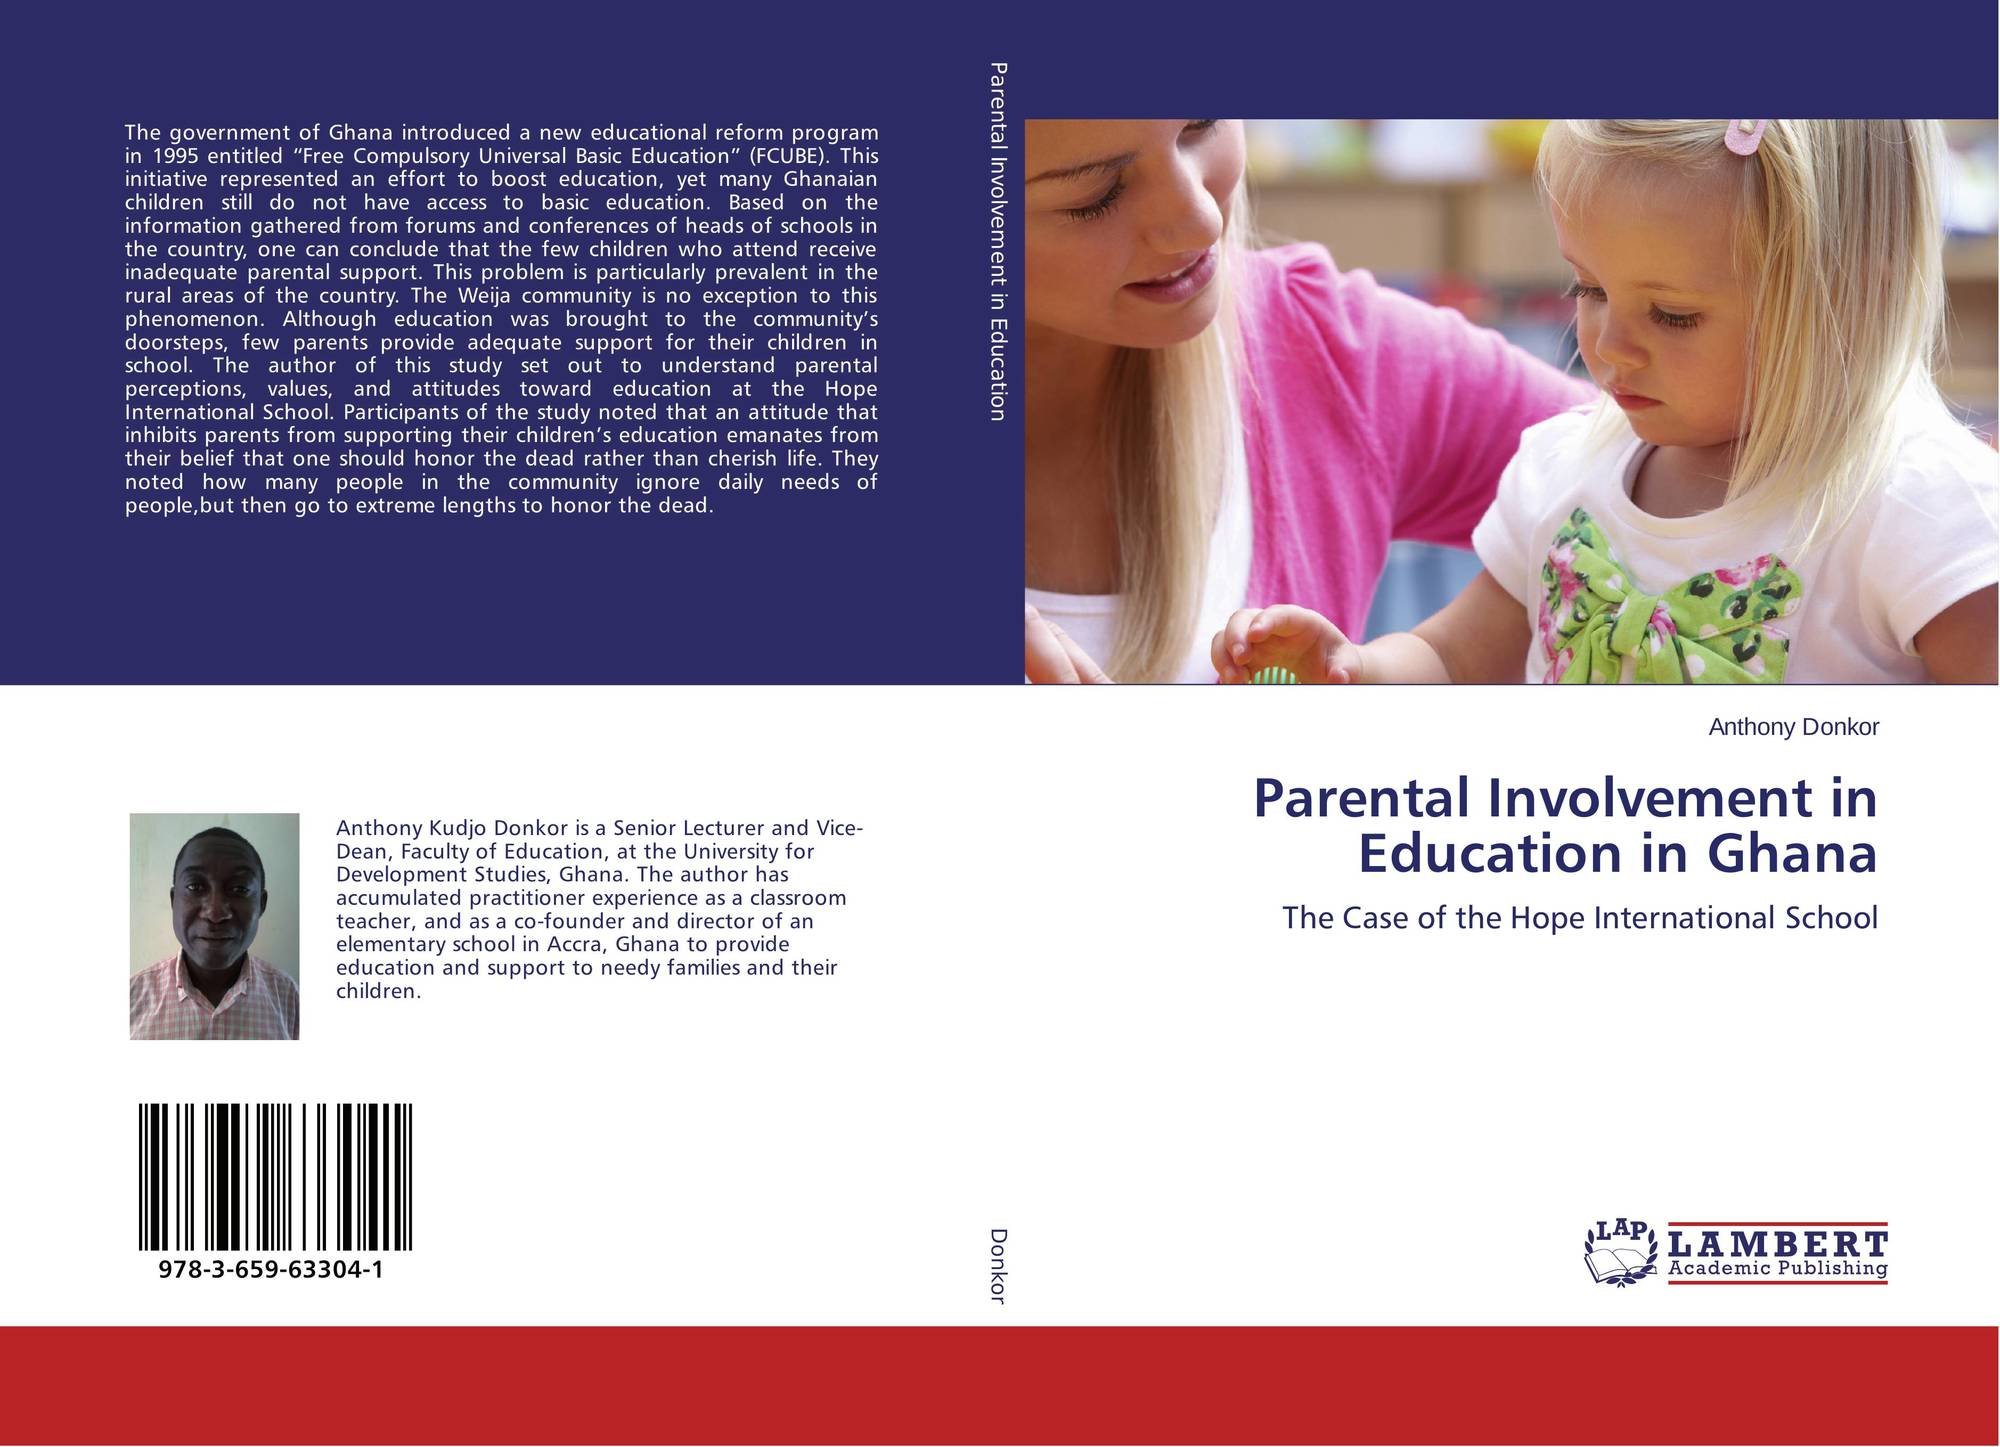 history of parental involvement in education Parental involvement in public education needs to be invited and facilitated throughout the student's school years parents should be considered full partners on their child's education team and involved in decision-making for their child.